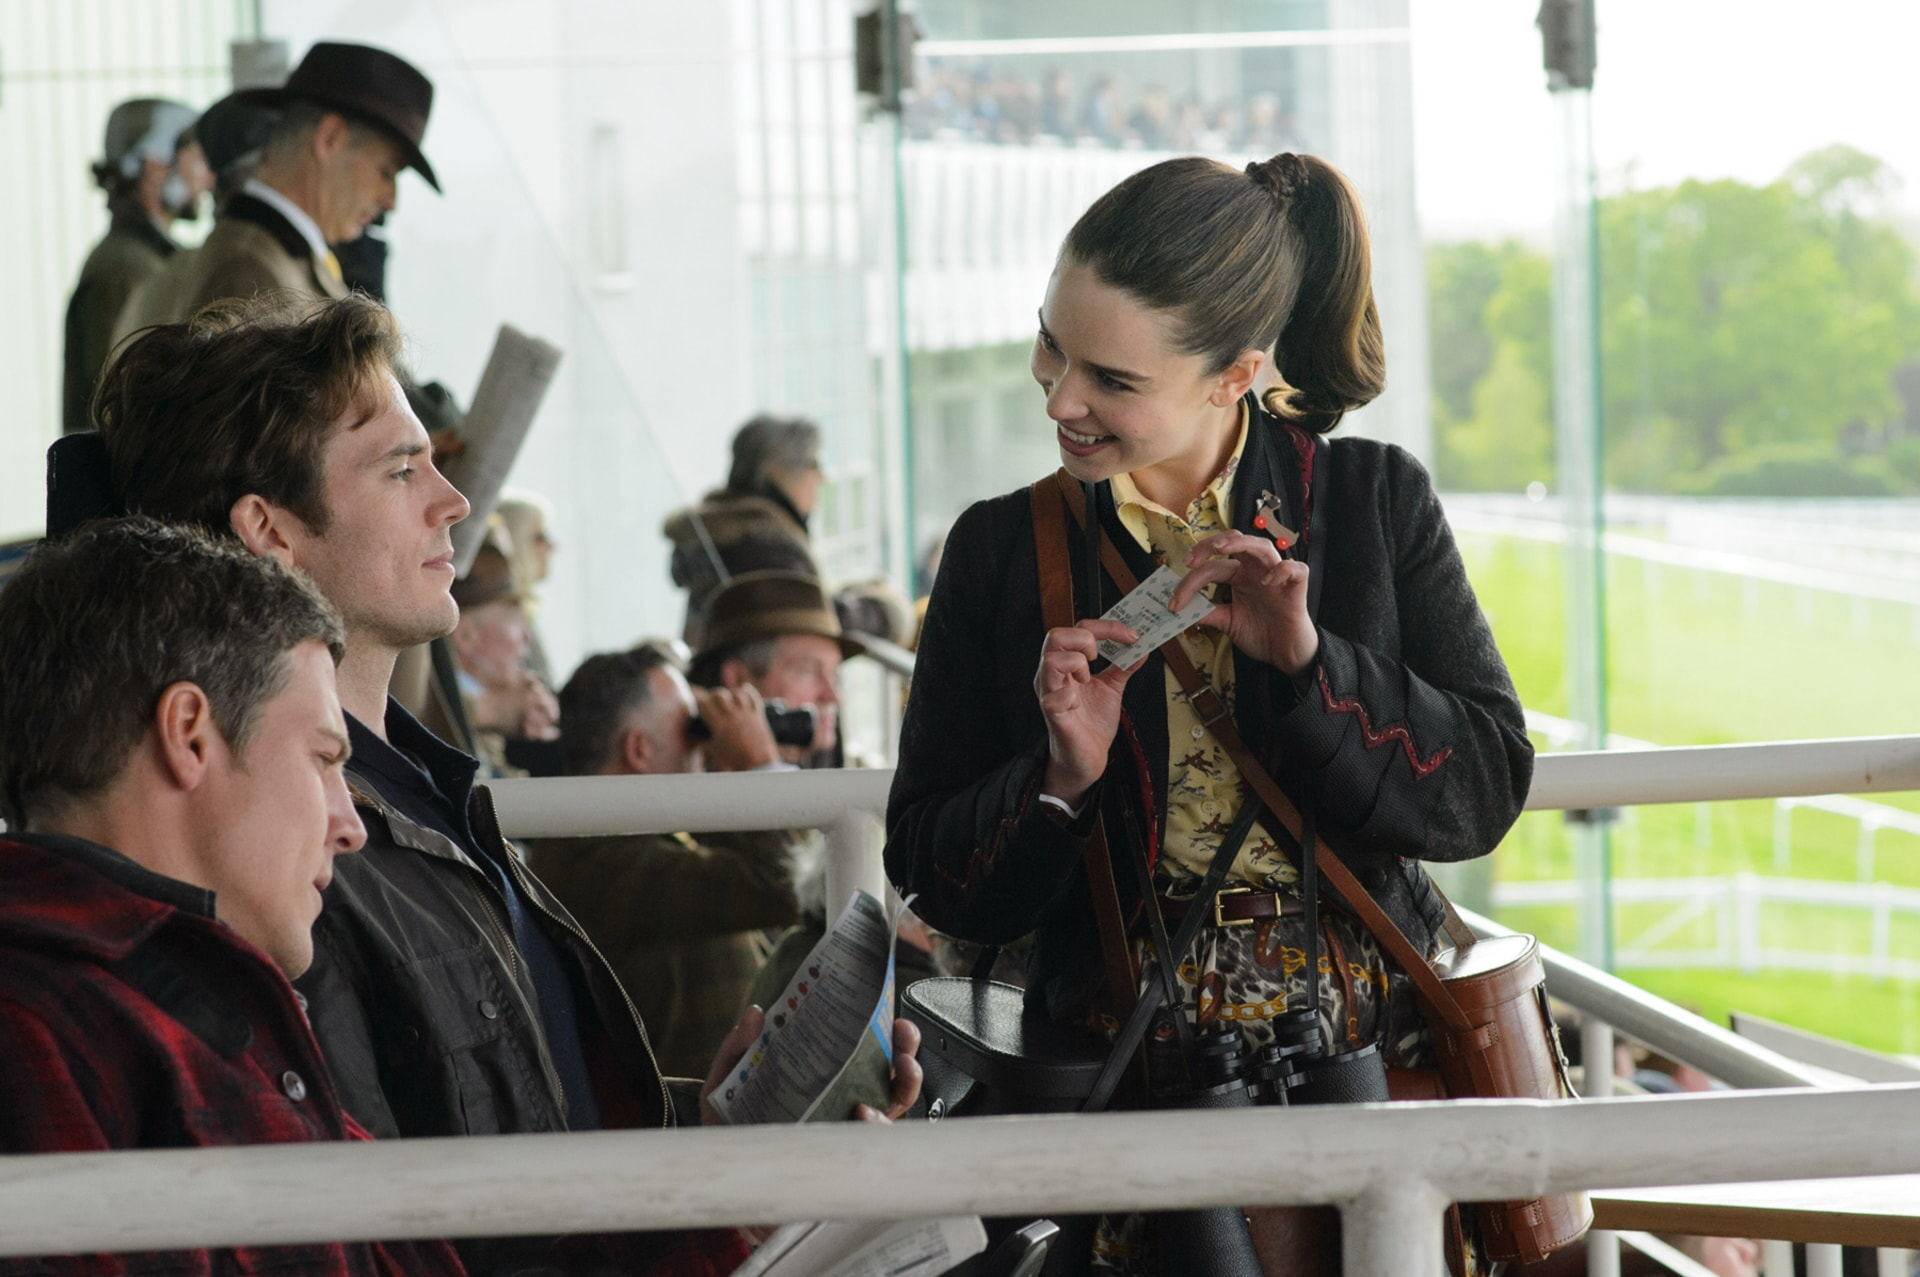 STEPHEN PEACOCKE as Nathan, SAM CLAFLIN as Will Traynor and EMILIA CLARKE as Lou Clark showing off a ticket.